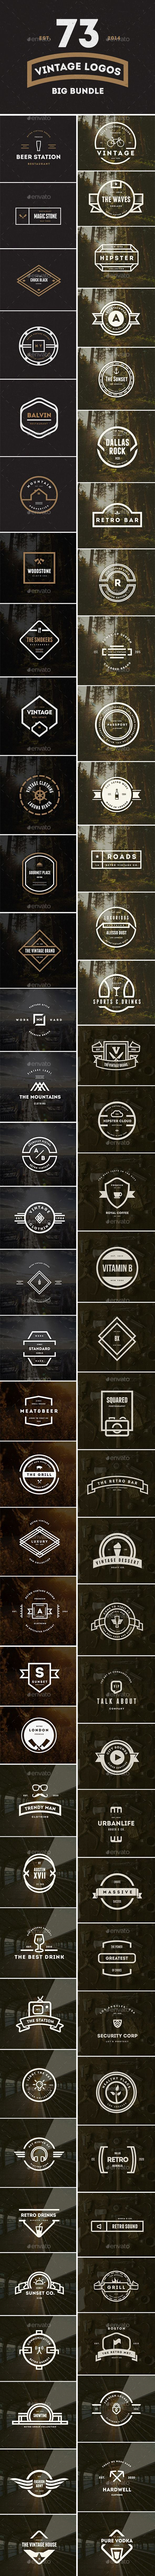 73 Vintage Labels & Badges Logos Bundle - Badges & Stickers Web Elements